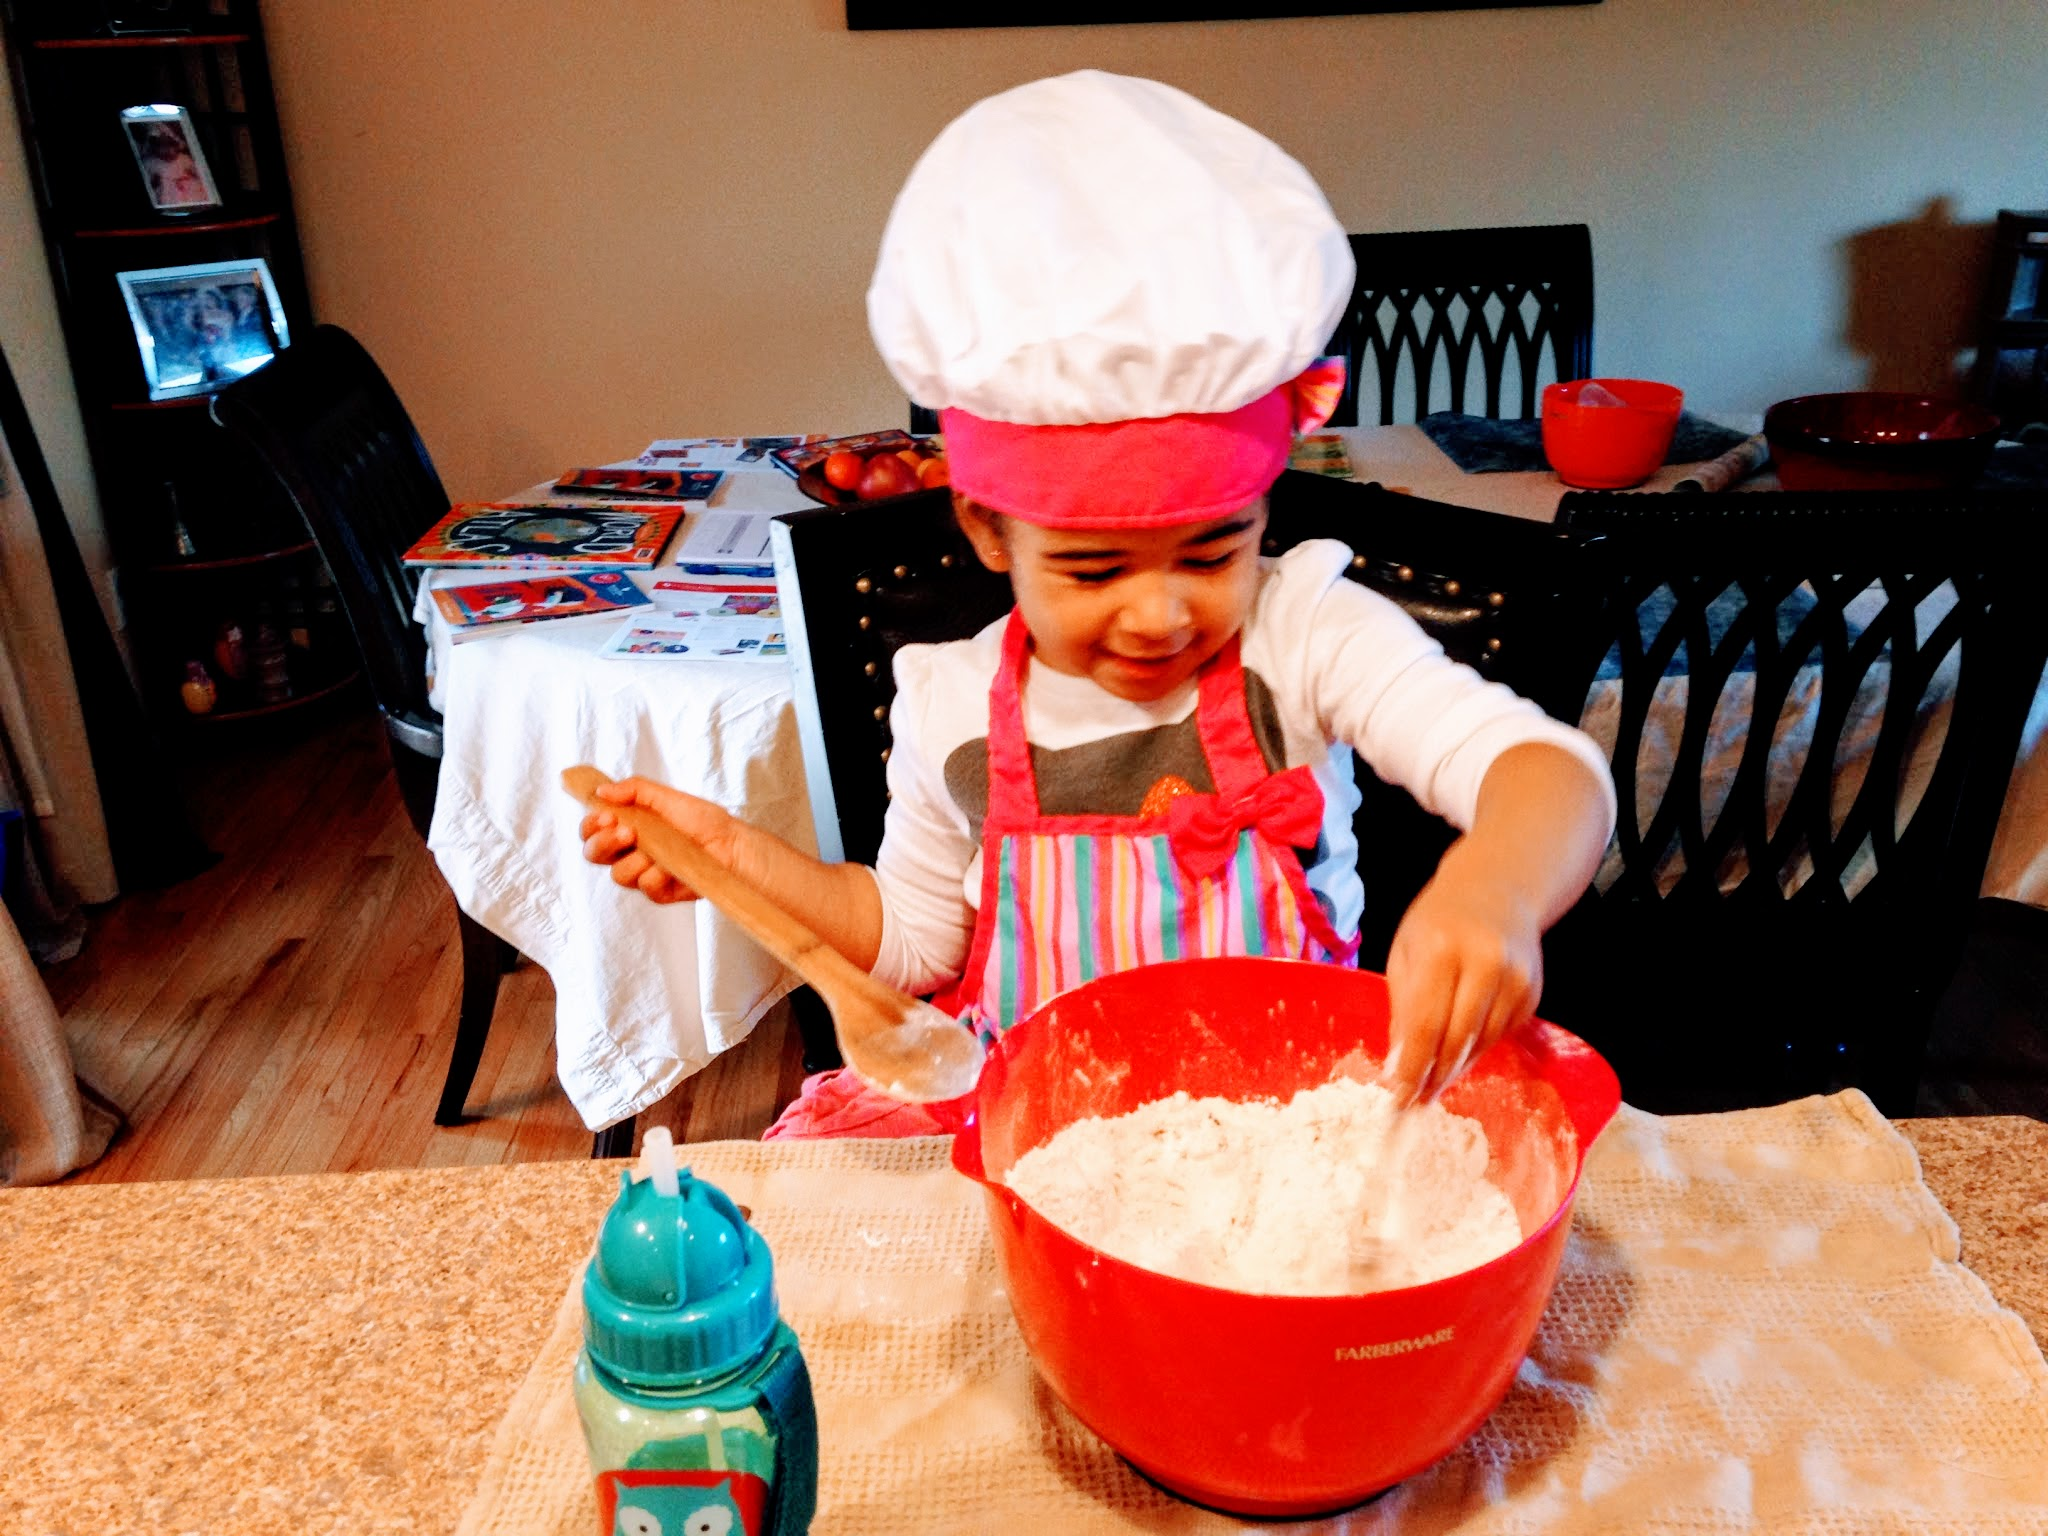 Kids' Cooking Classes Parties Westchester NY